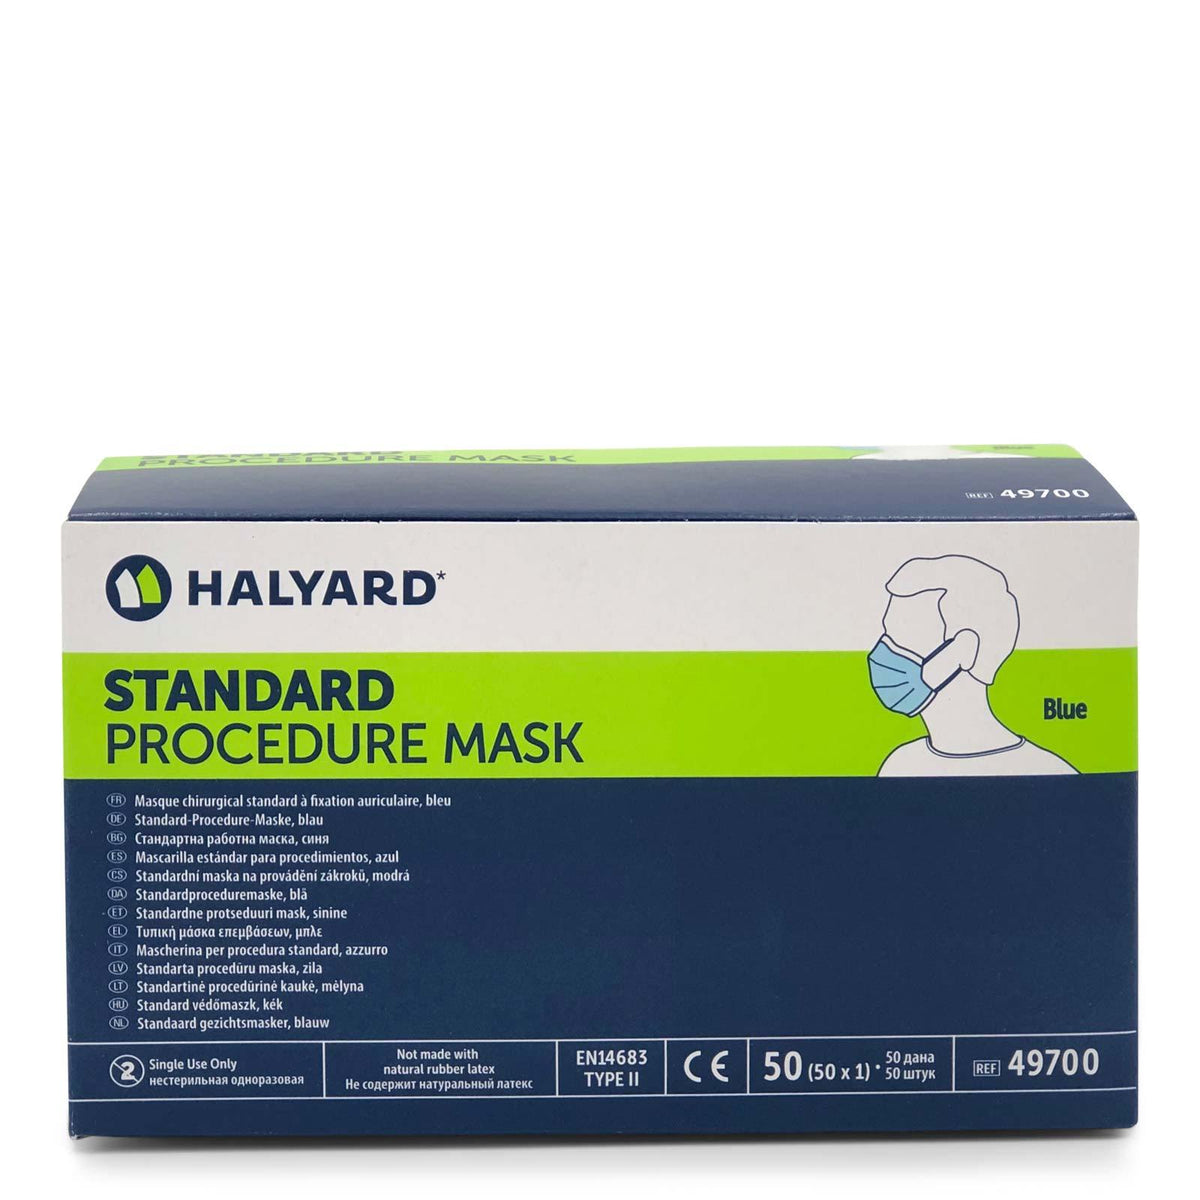 Halyard Health Procedure Mask with Earloops, Blue, 49700, box of 50